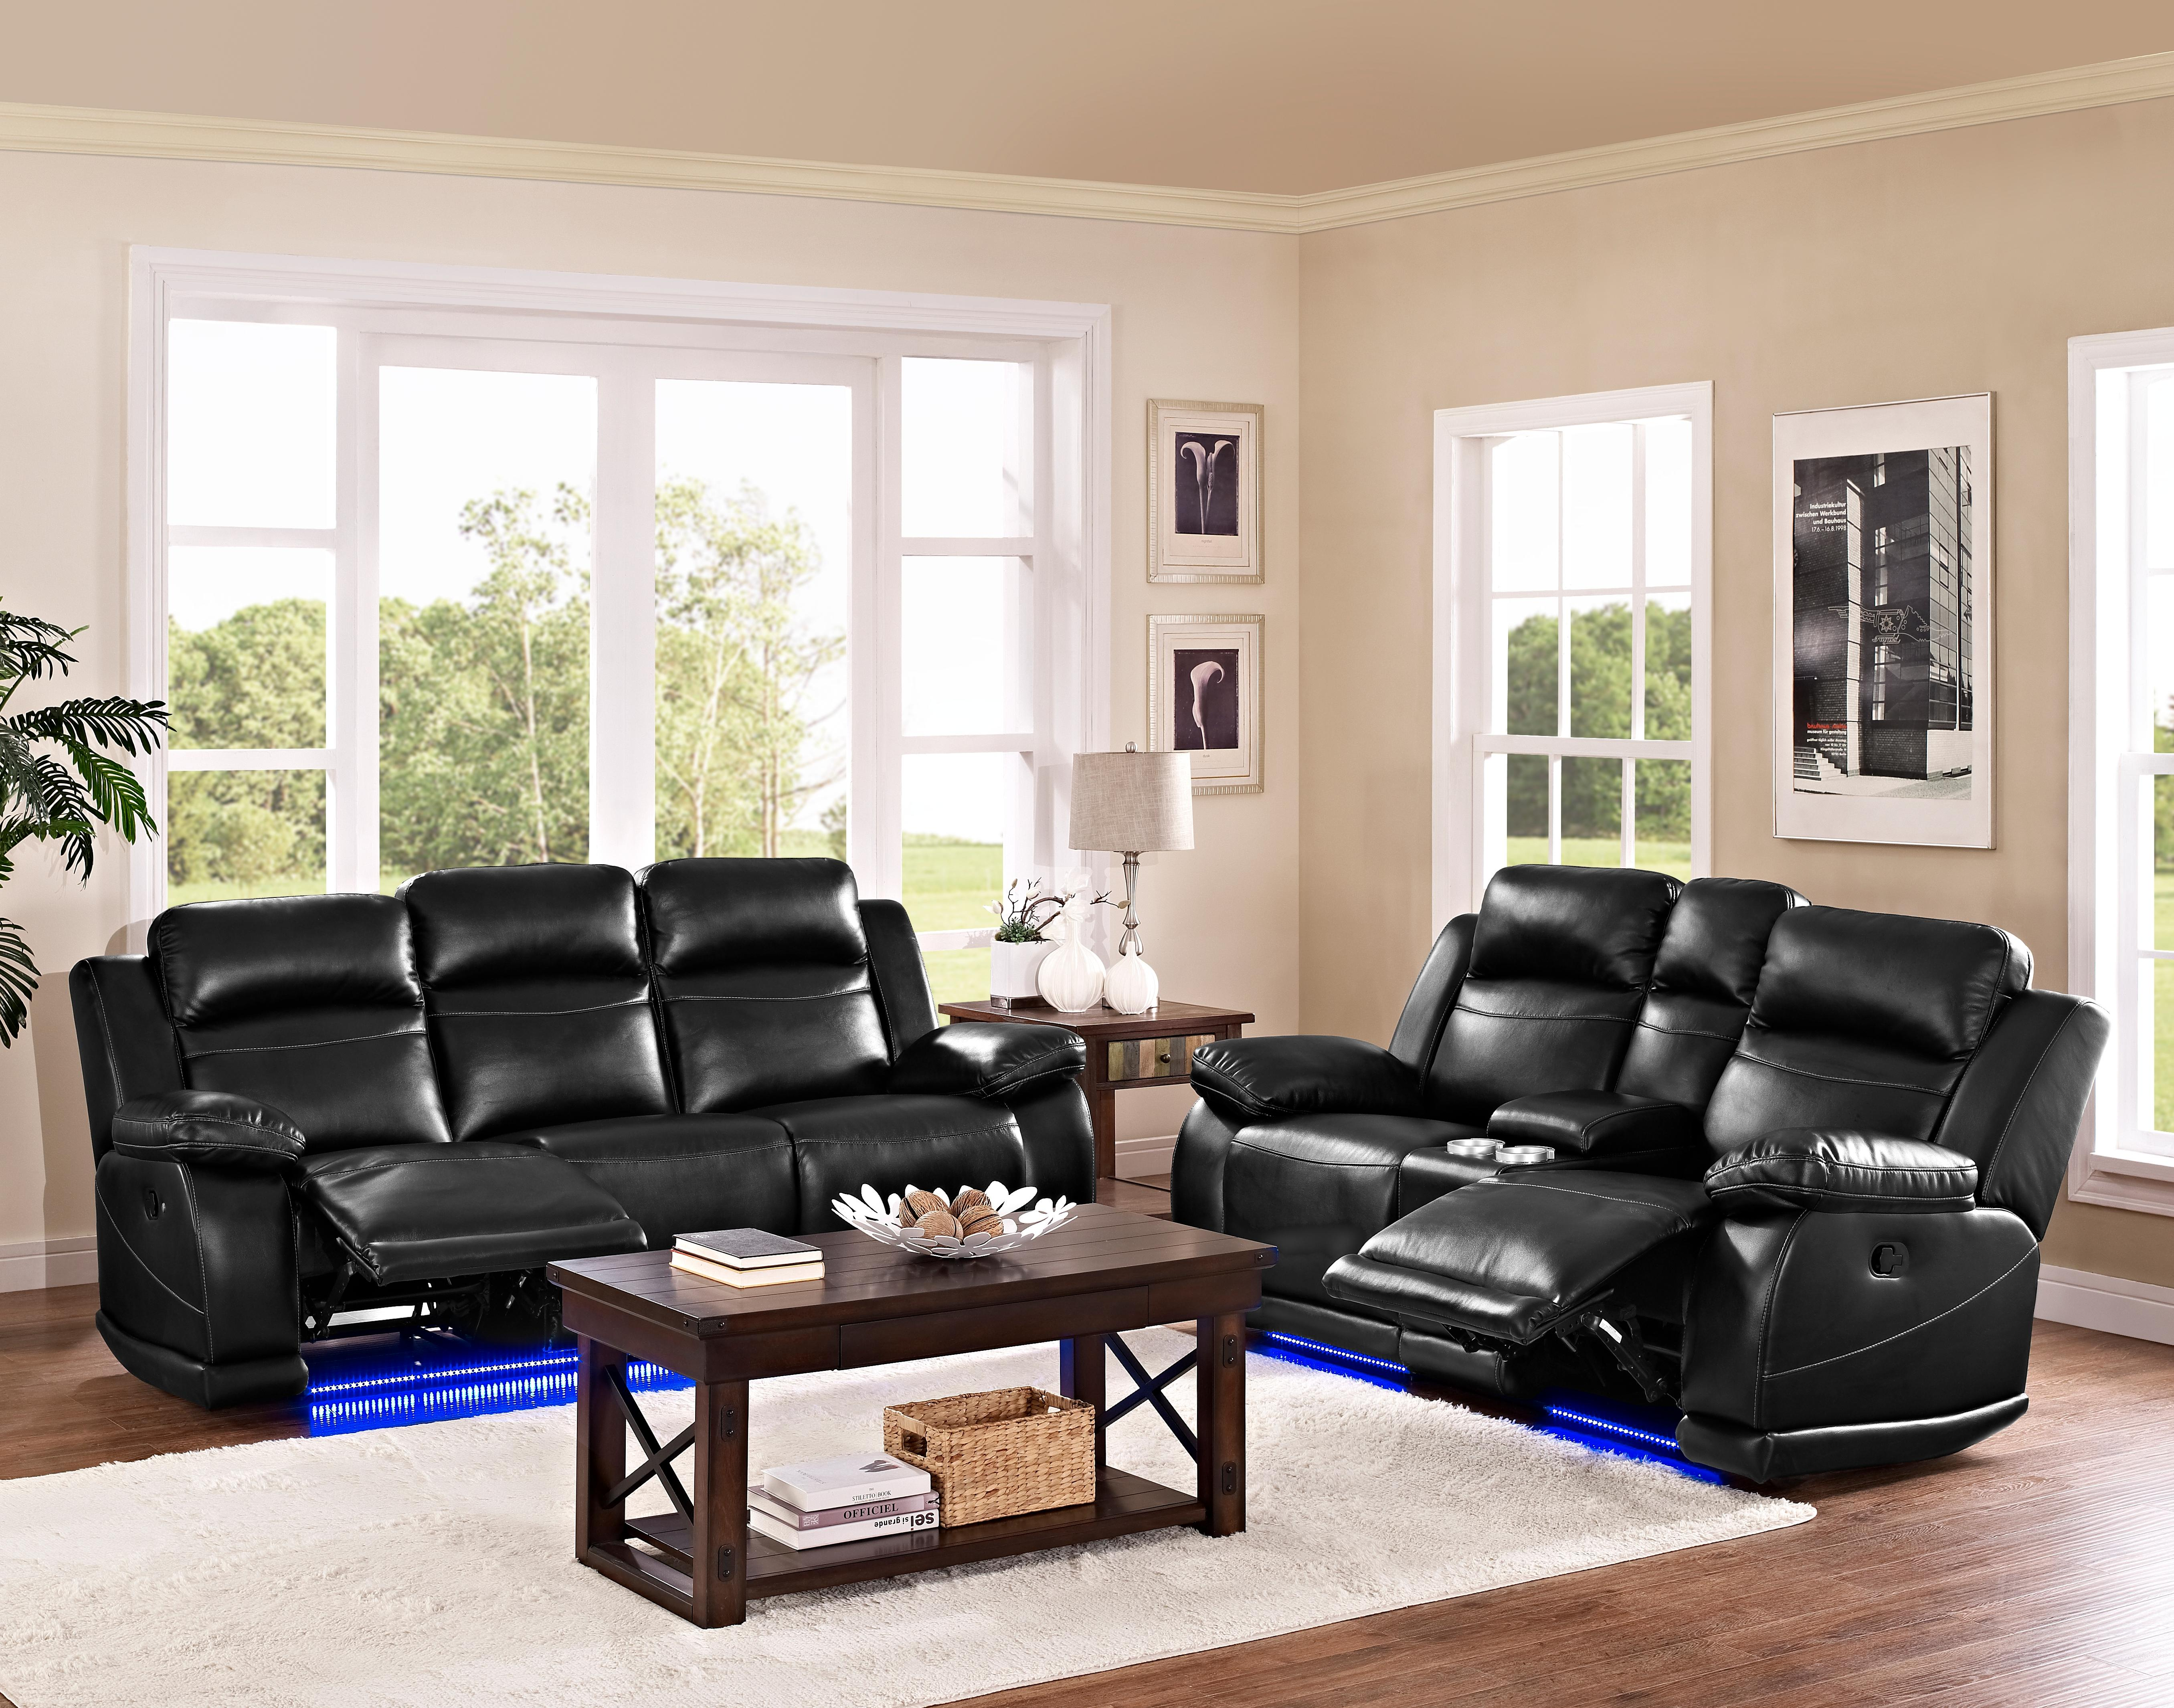 Wg R Furniture Coupons Near Me In Appleton 8coupons